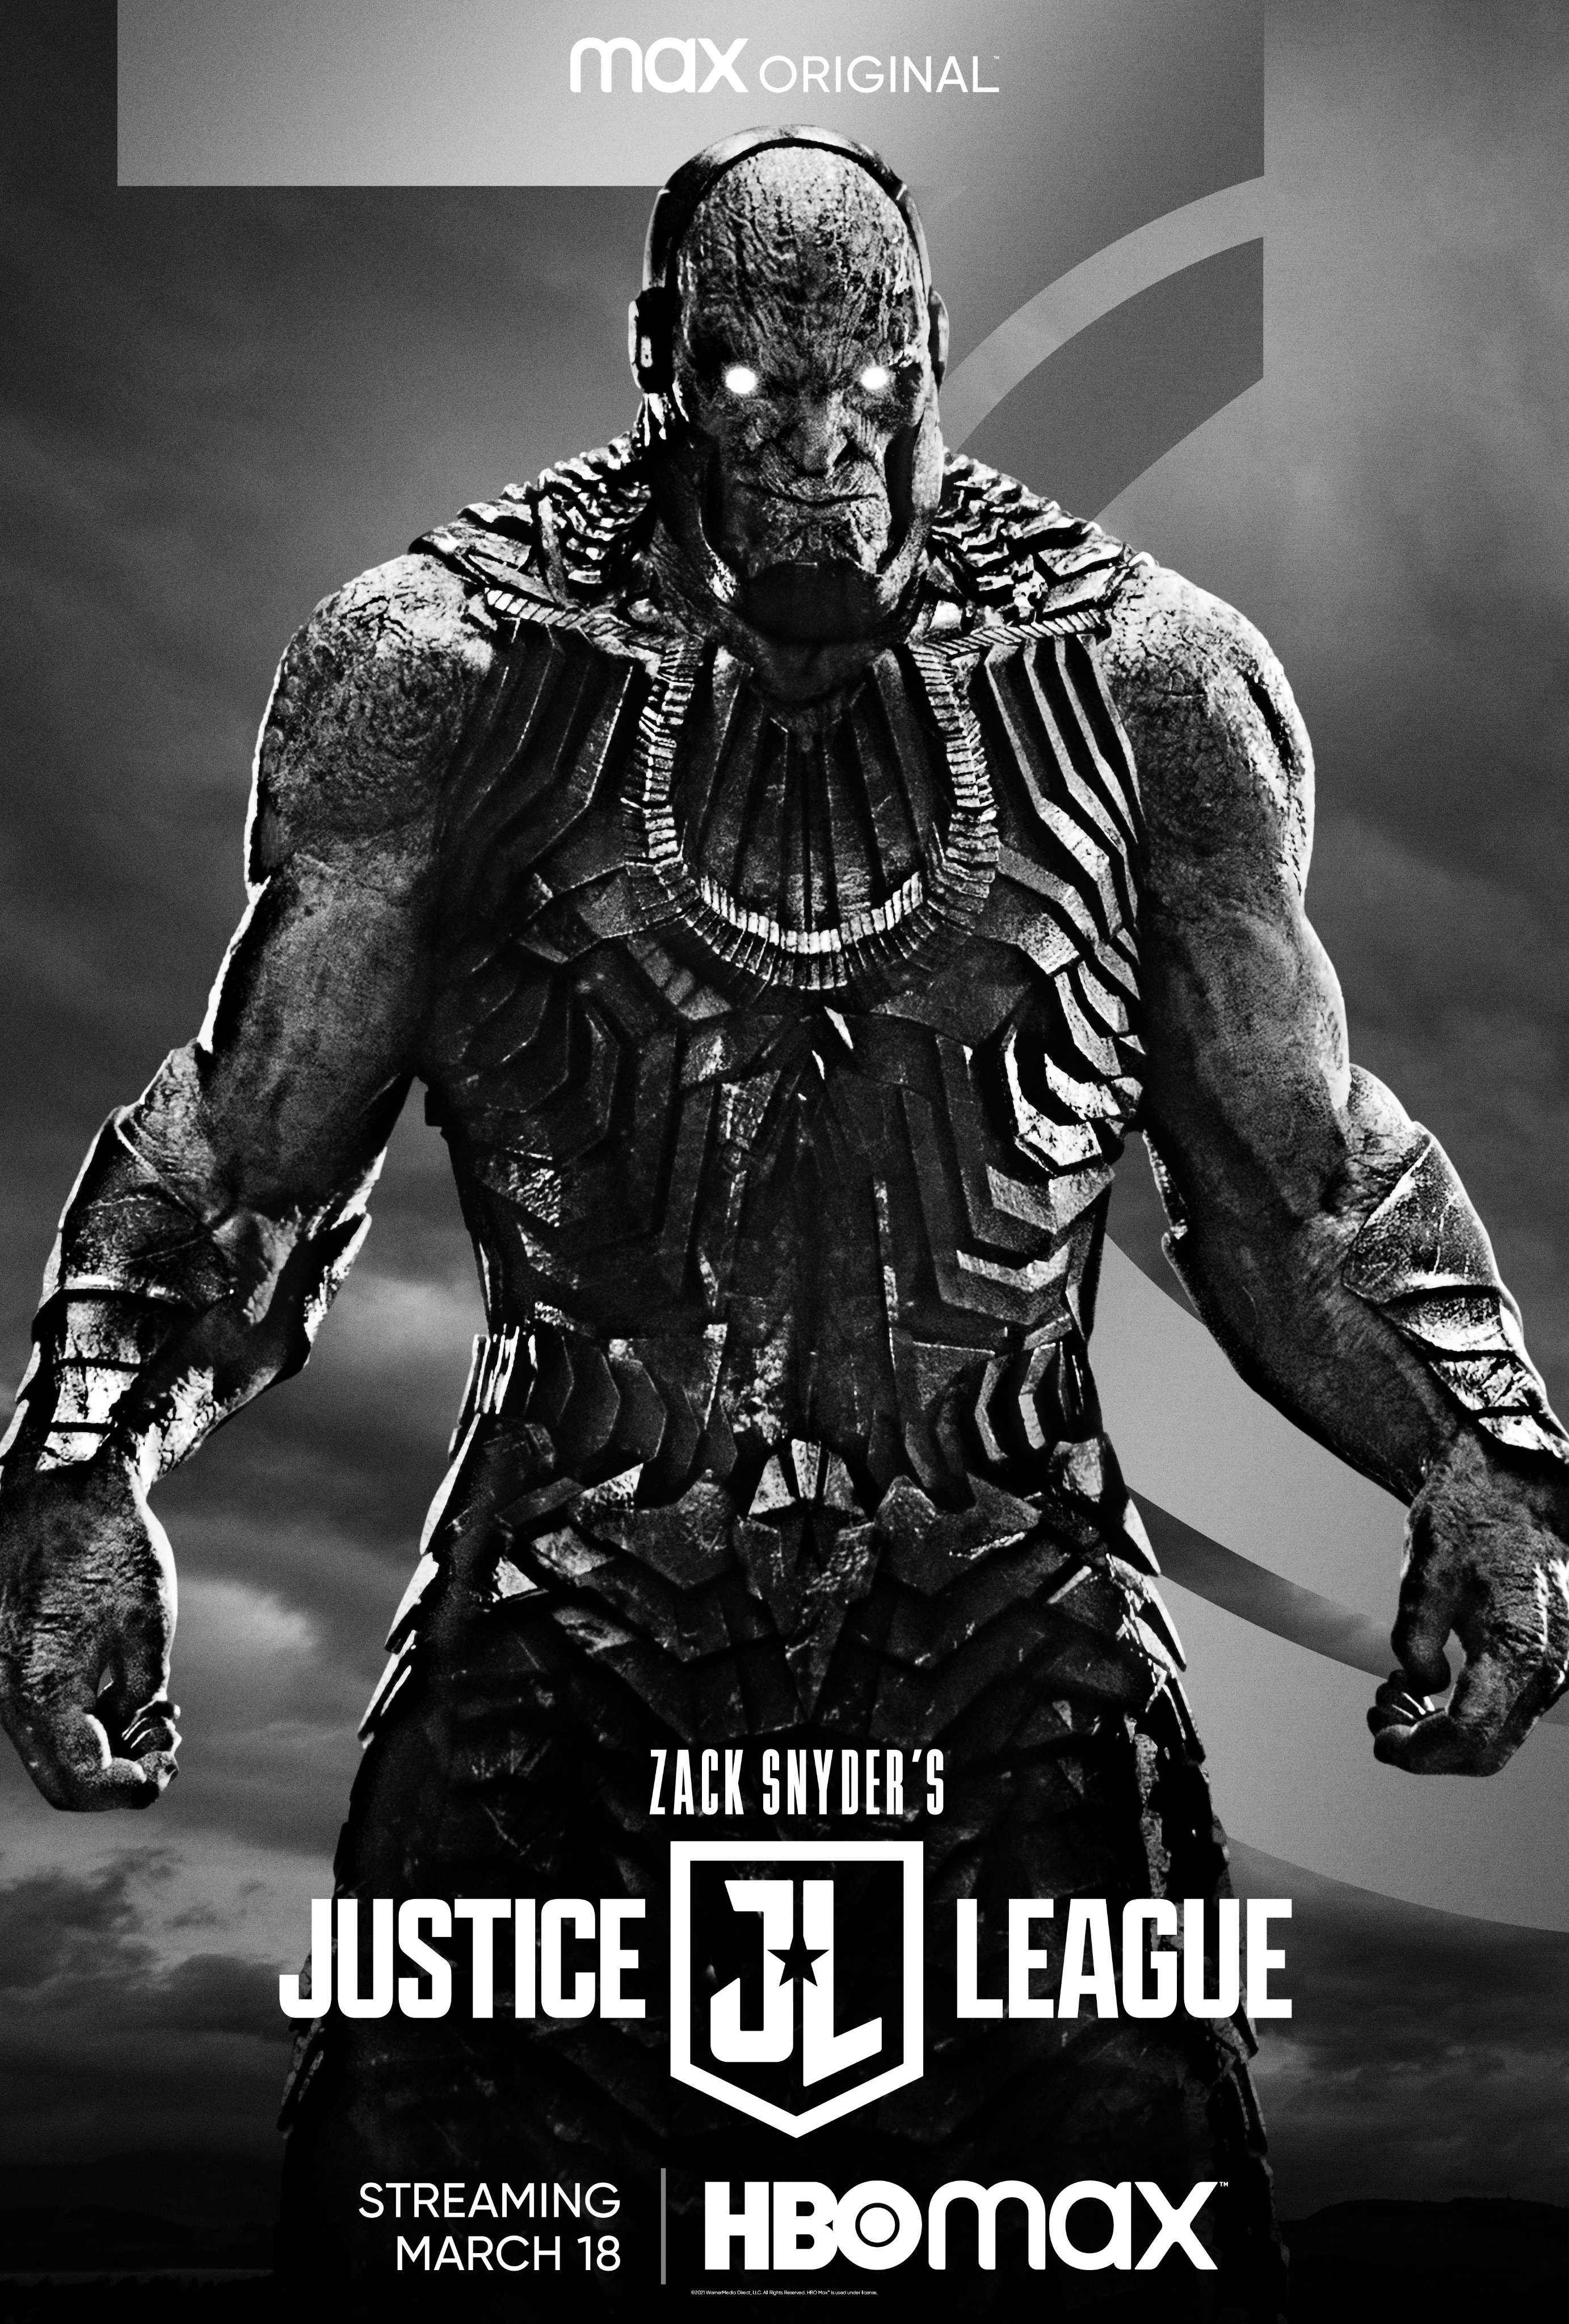 Zack Snyder's Justice League Darkseid Character Poster